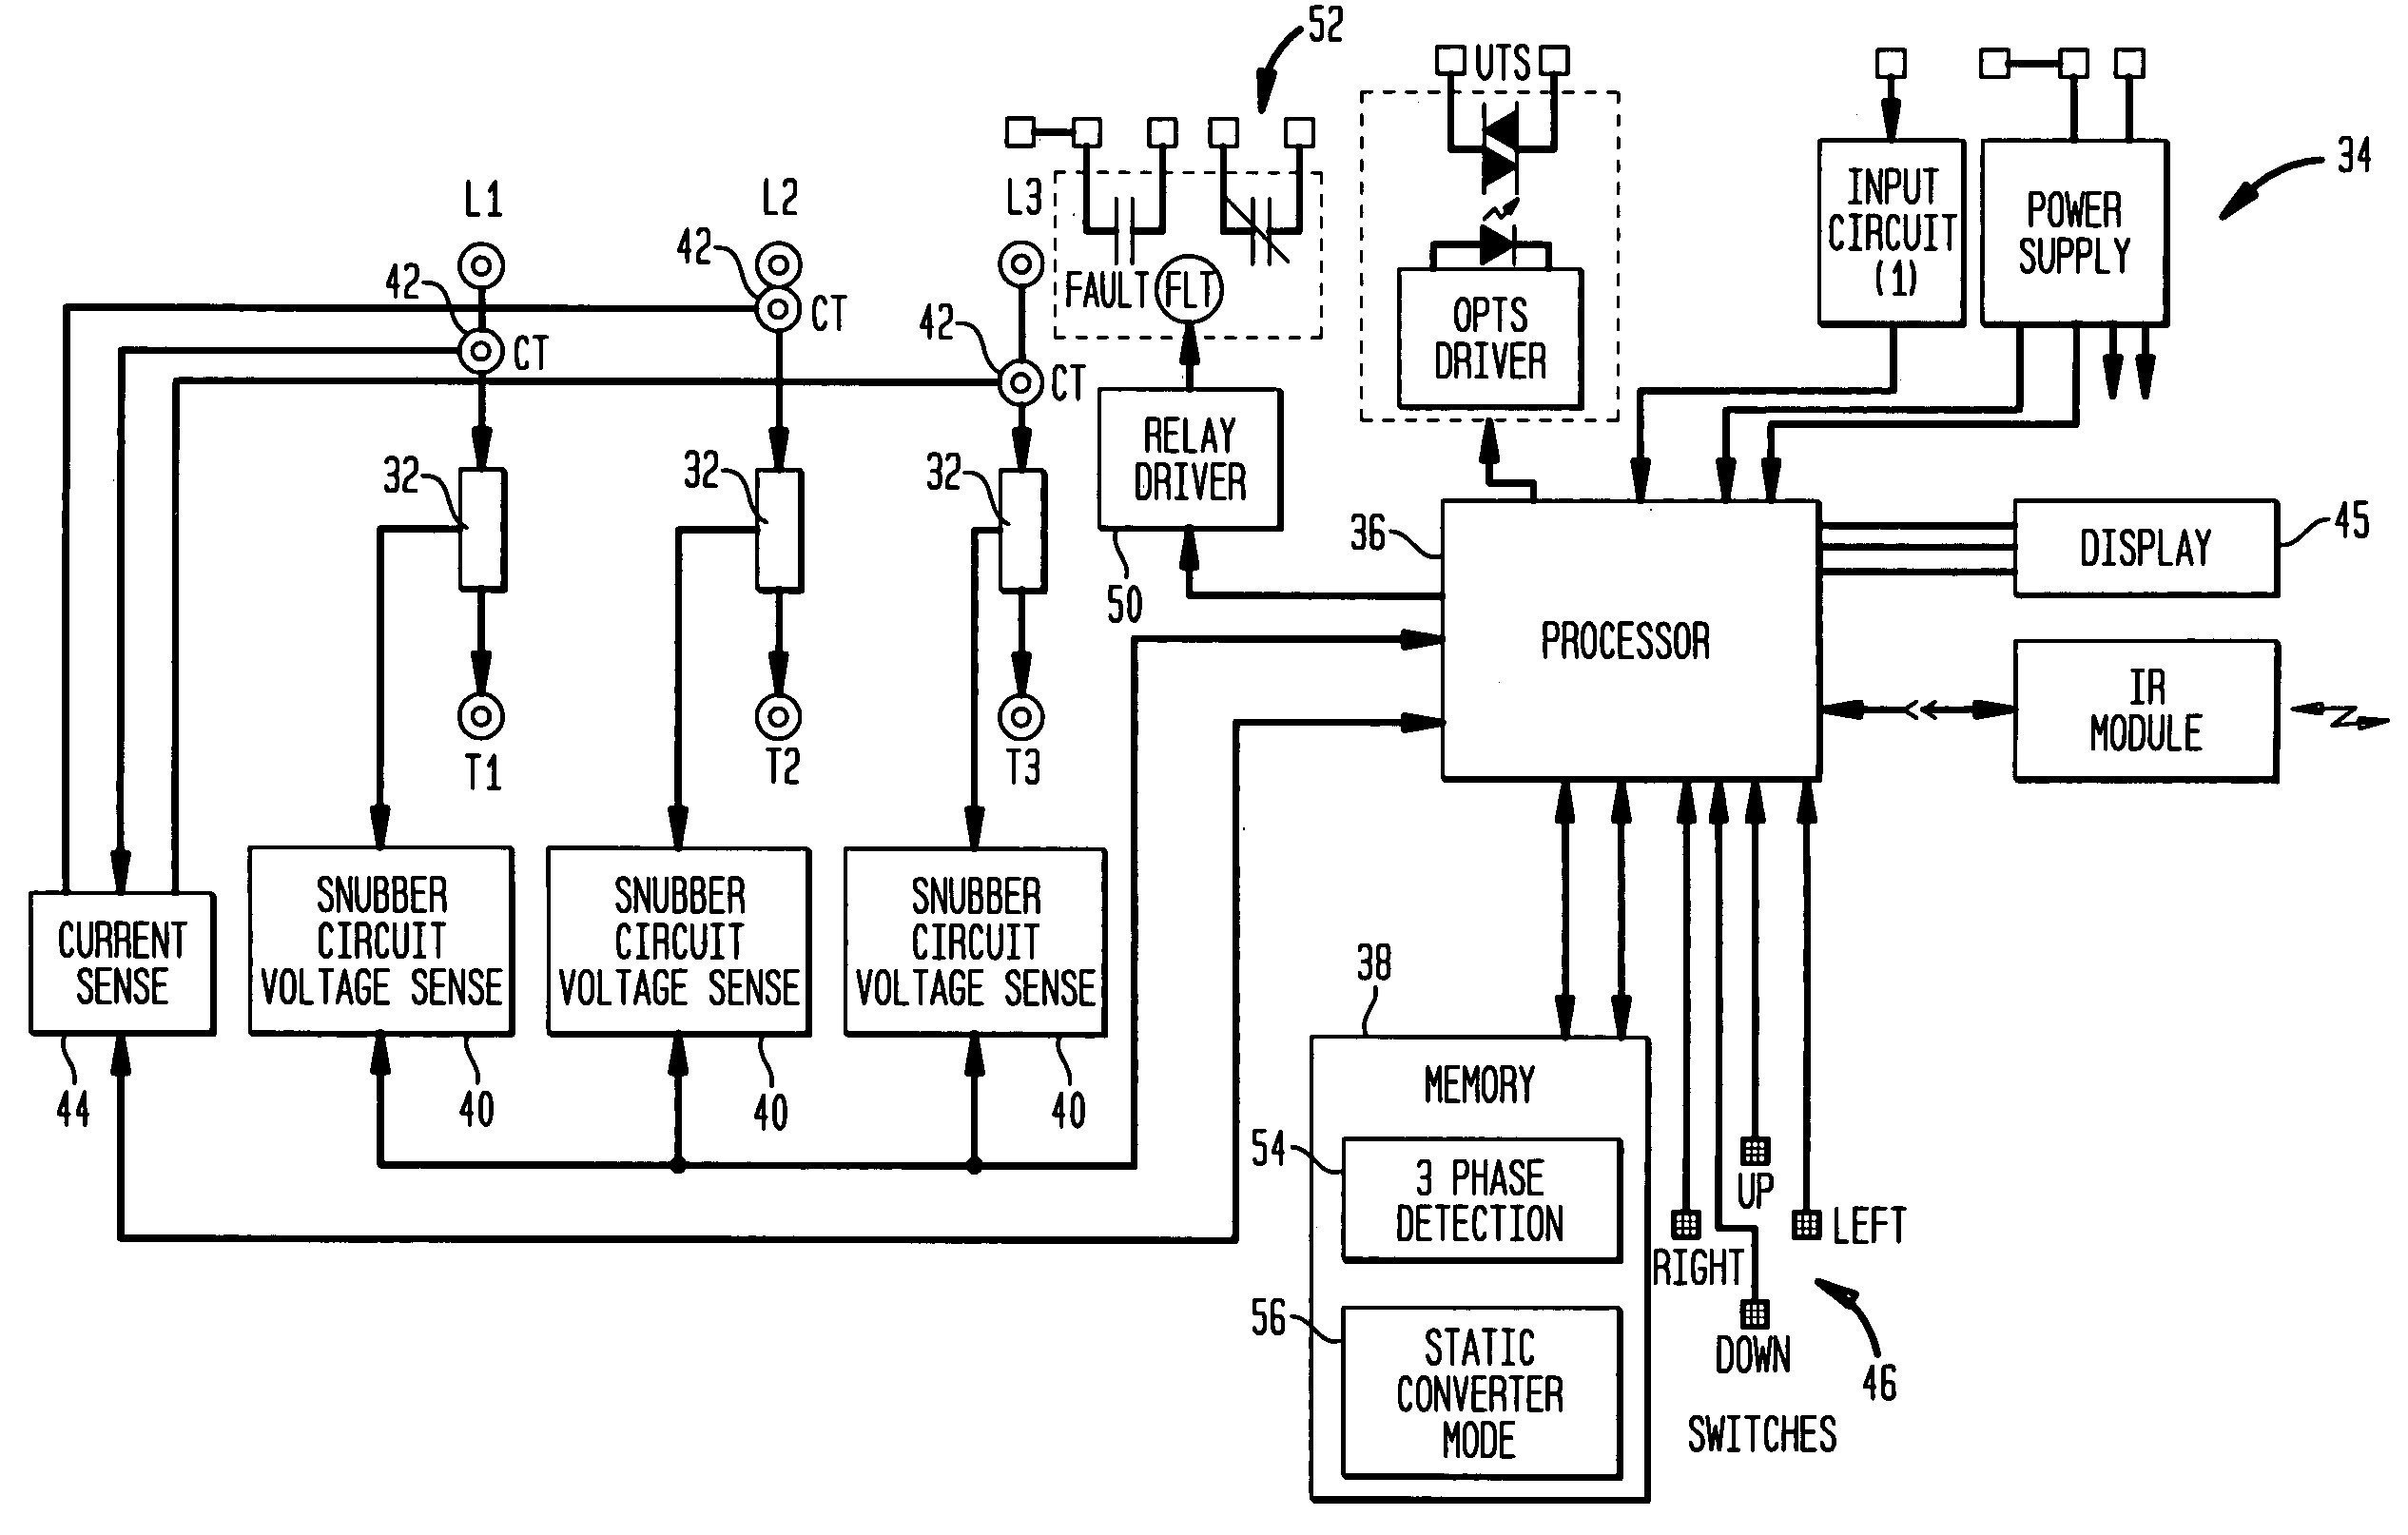 3 Phase Contactor Wiring Diagram Start Stop 2018 Wiring Diagram - 3 Phase Contactor Wiring Diagram Start Stop